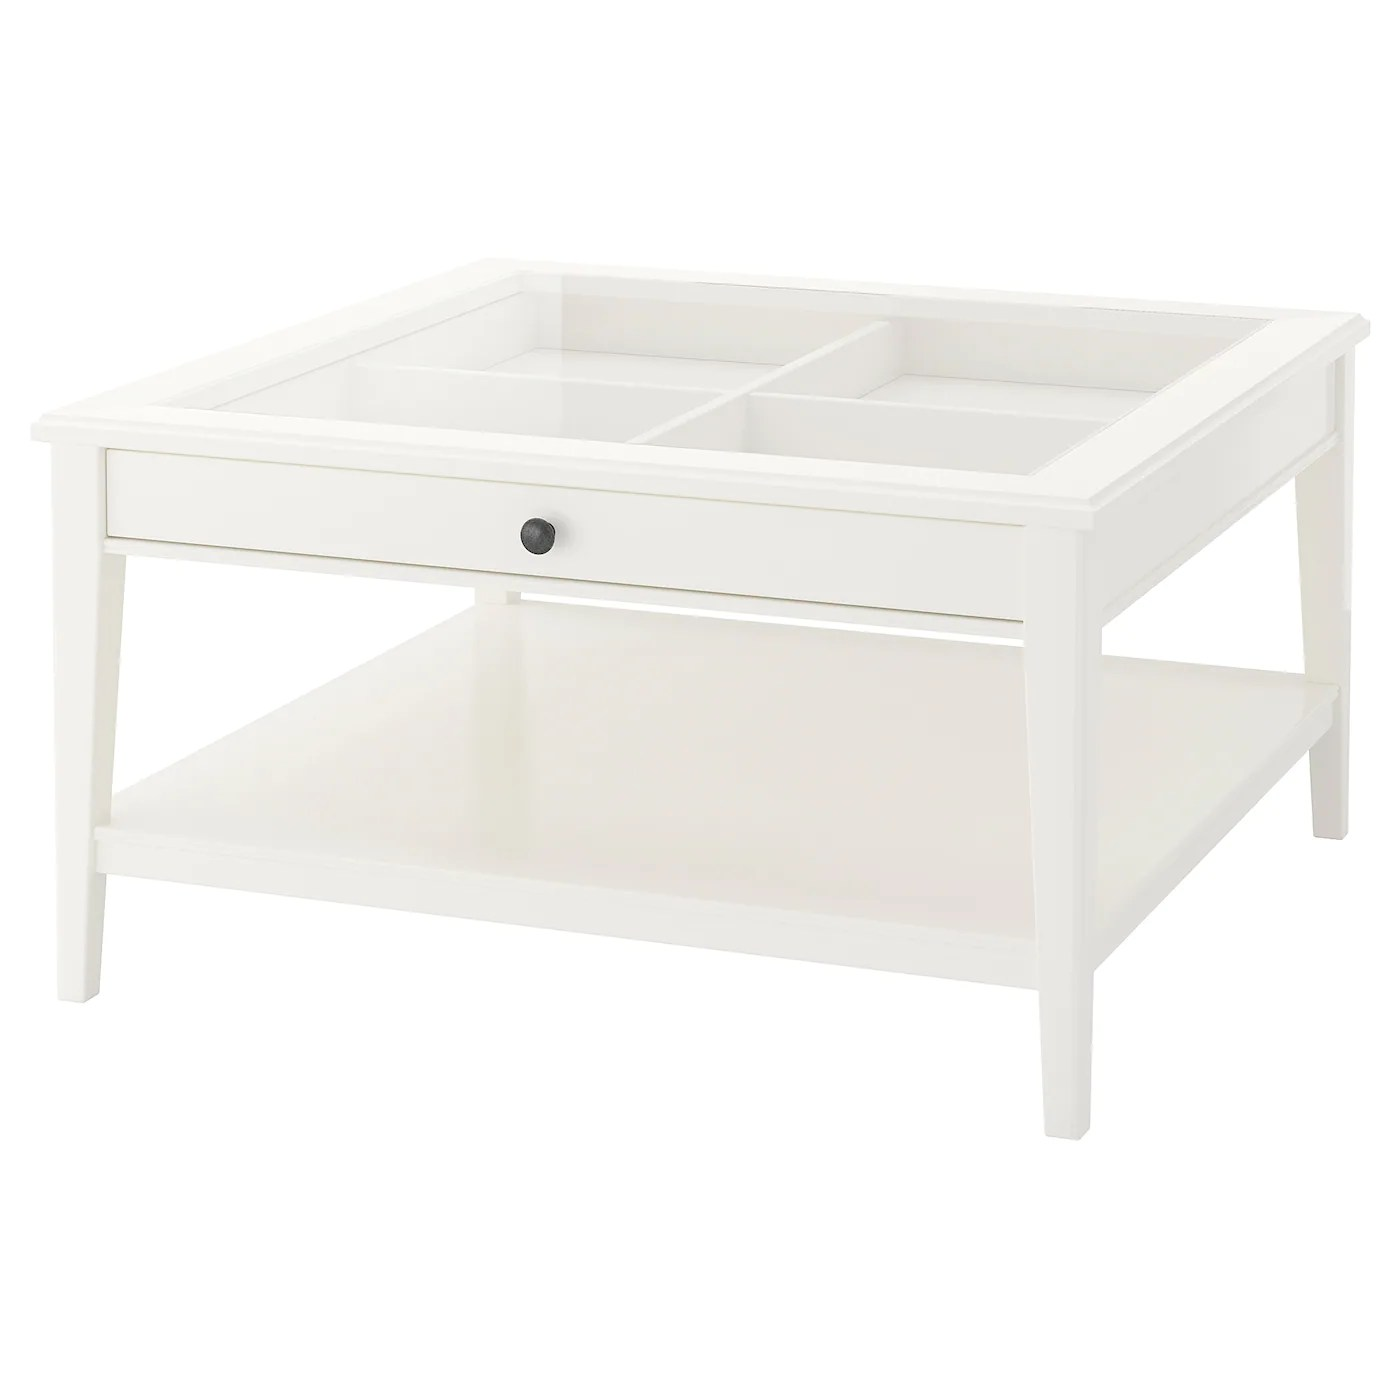 Liatorp White Glass Coffee Table 93x93 Cm Ikea